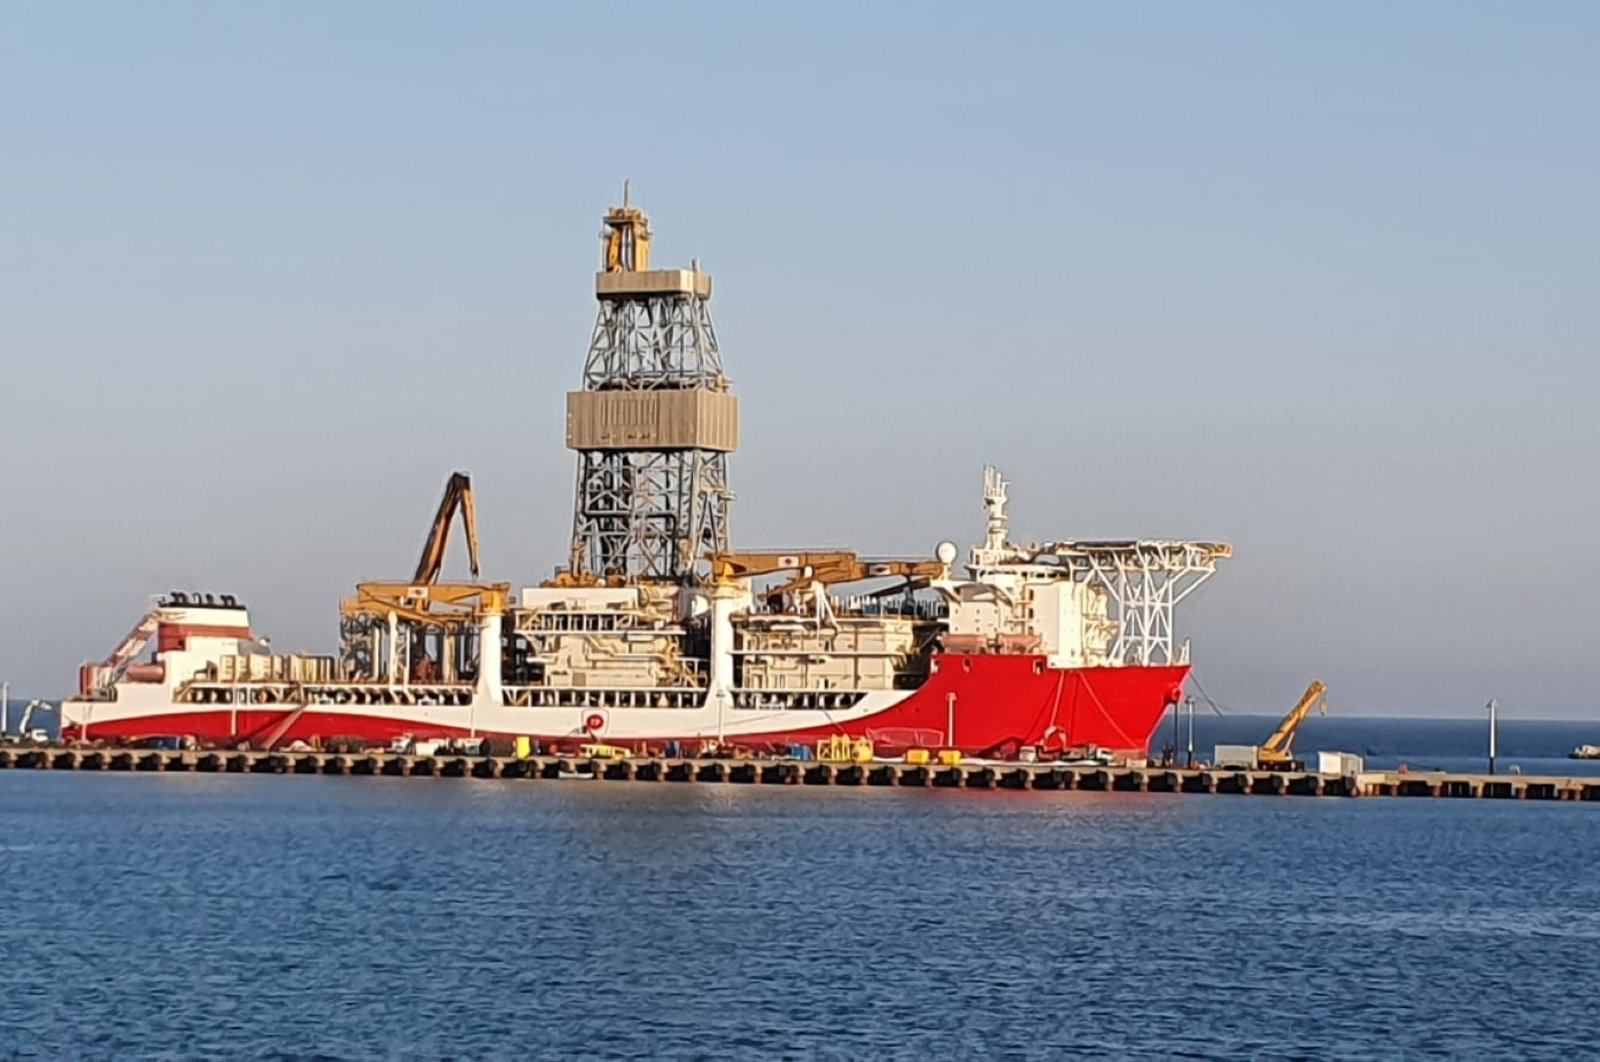 The drillship Kanuni at sea in southern Mersin province, Turkey, Sept. 9, 2020 (DHA Photo)